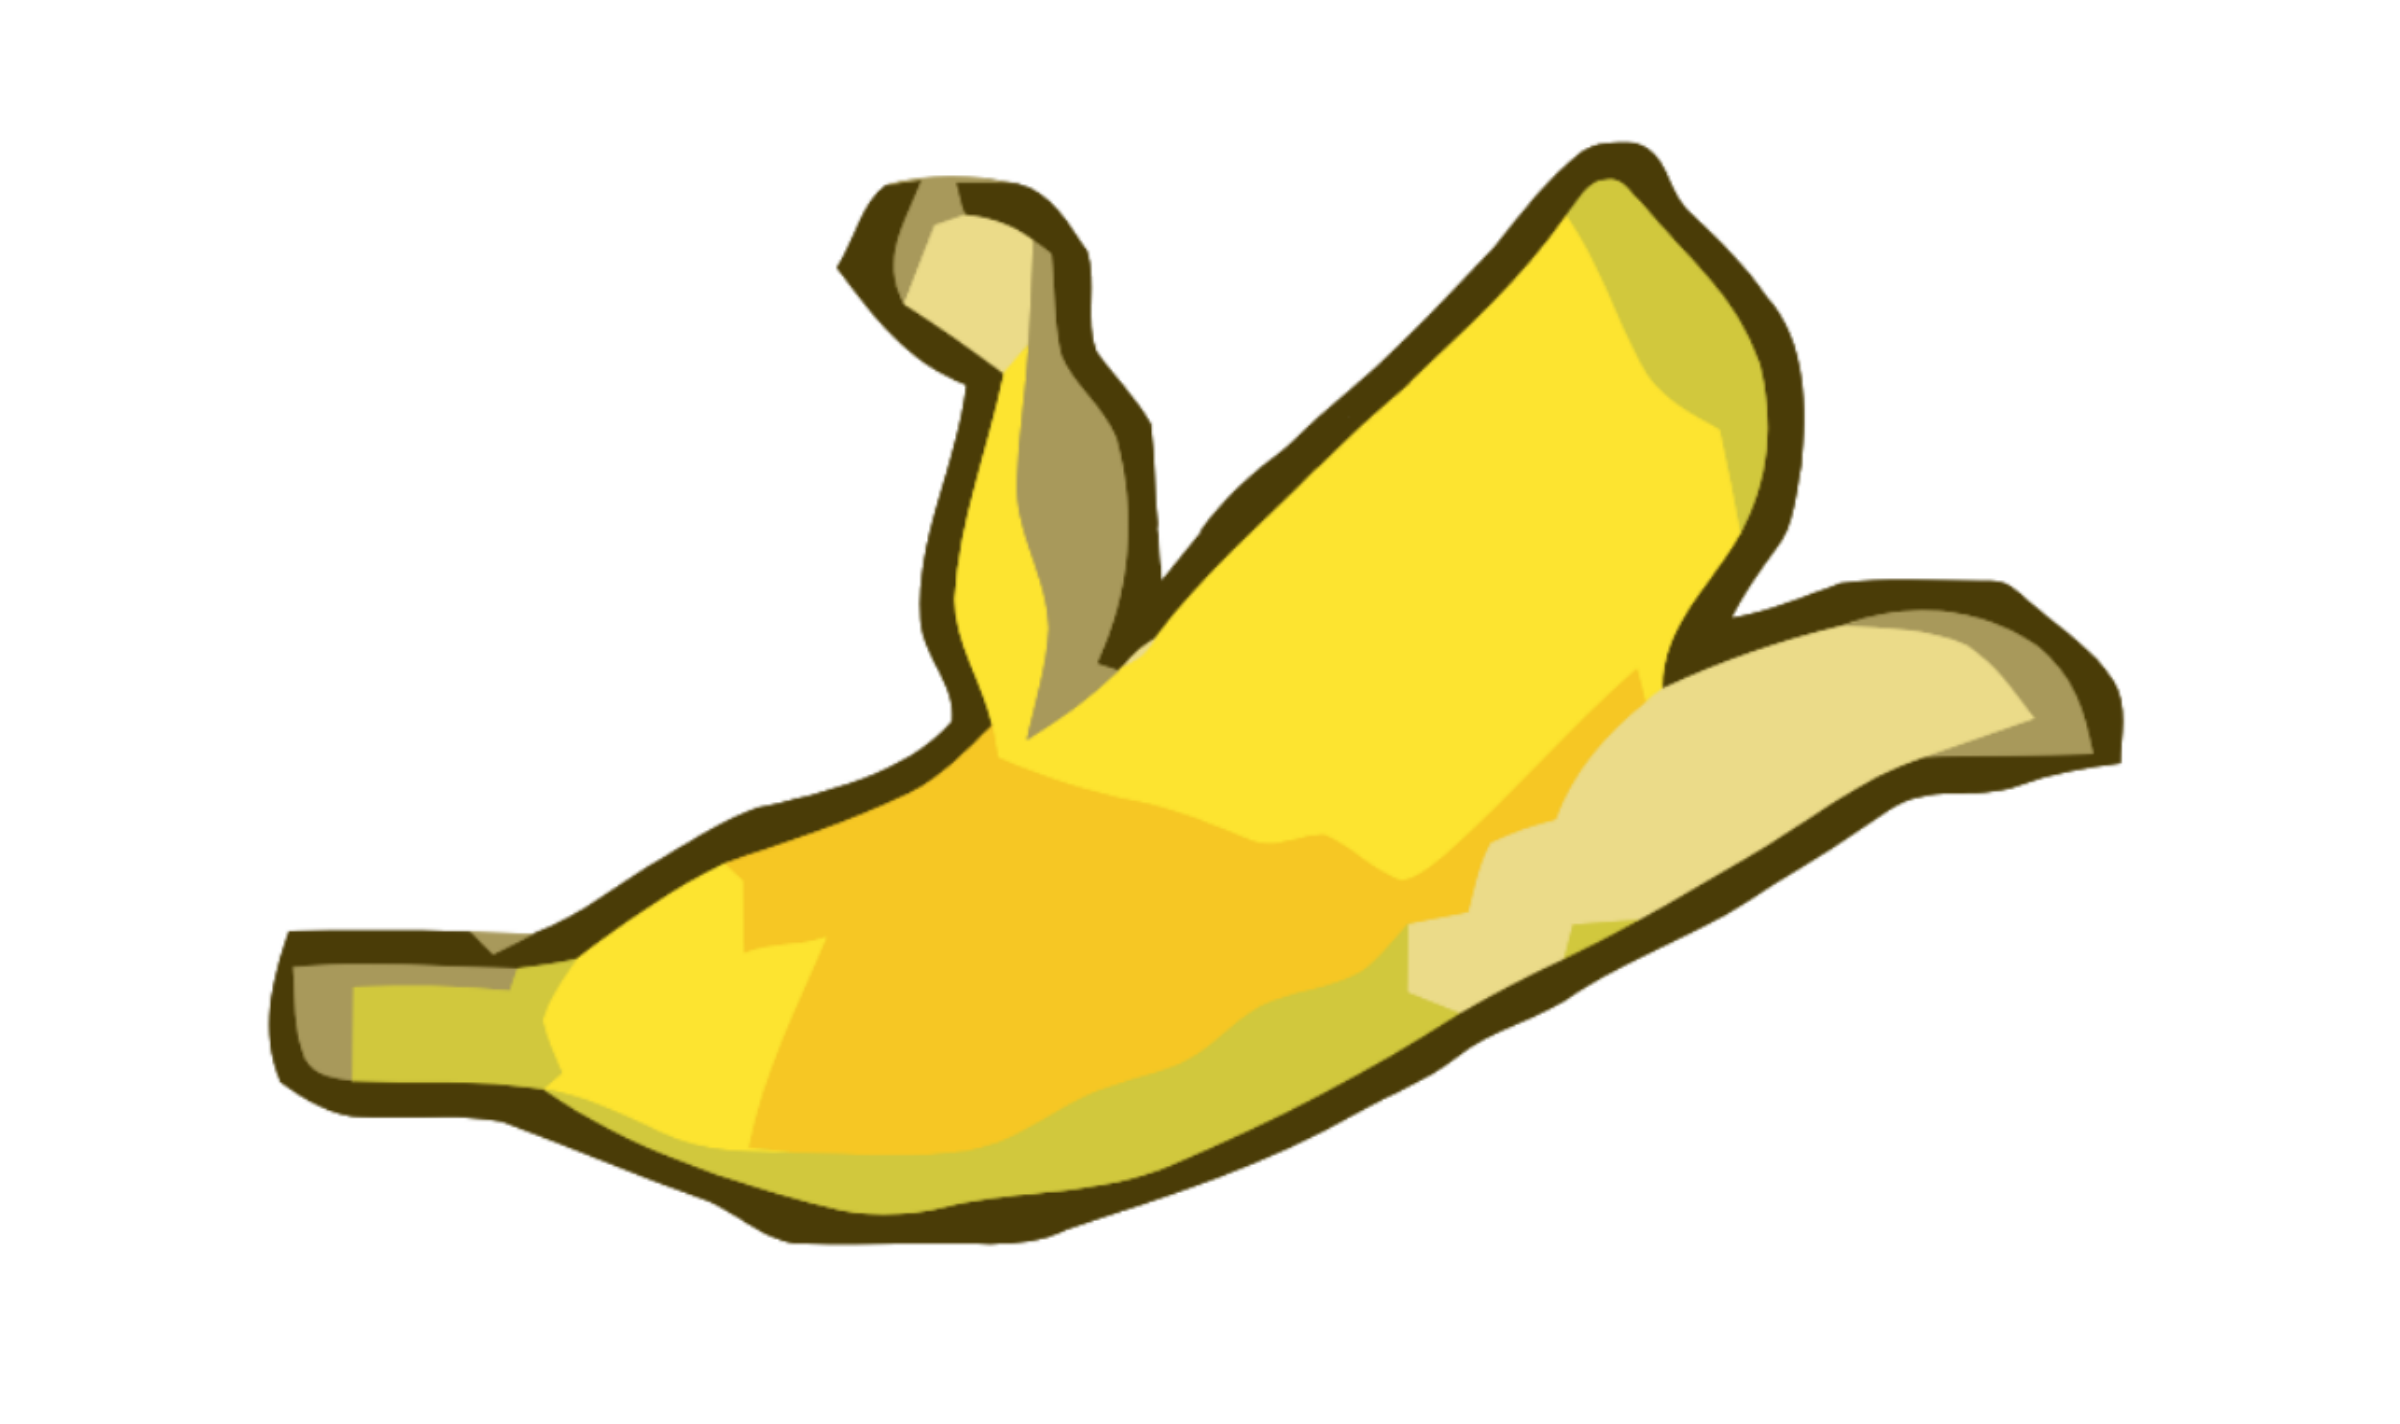 Banana Peel by Falco276